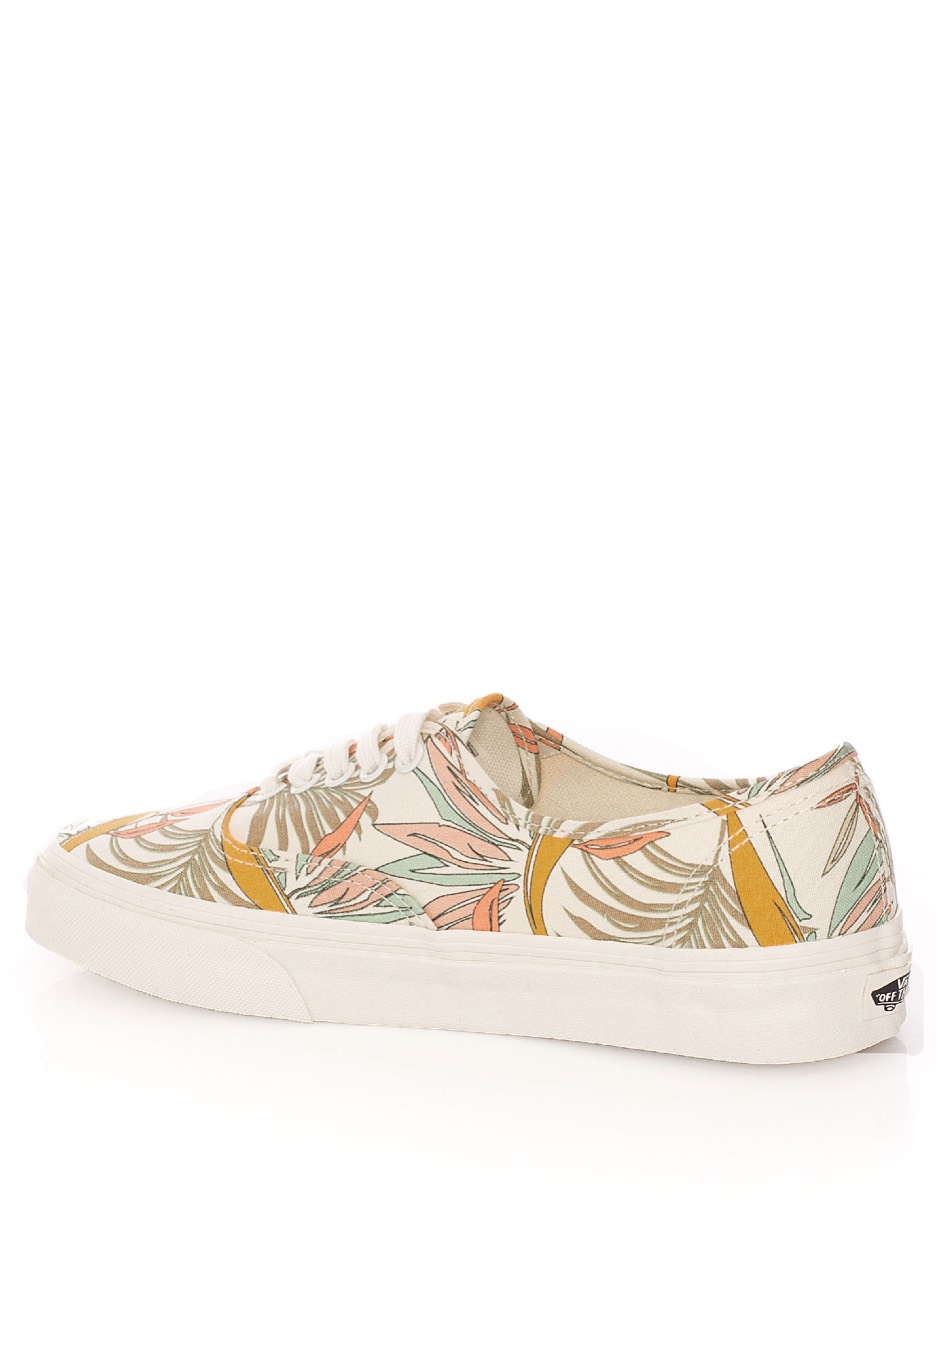 ... Vans - Authentic California Floral Marshmallow Marshmallow - Girl Shoes  ... 2f029b66e1